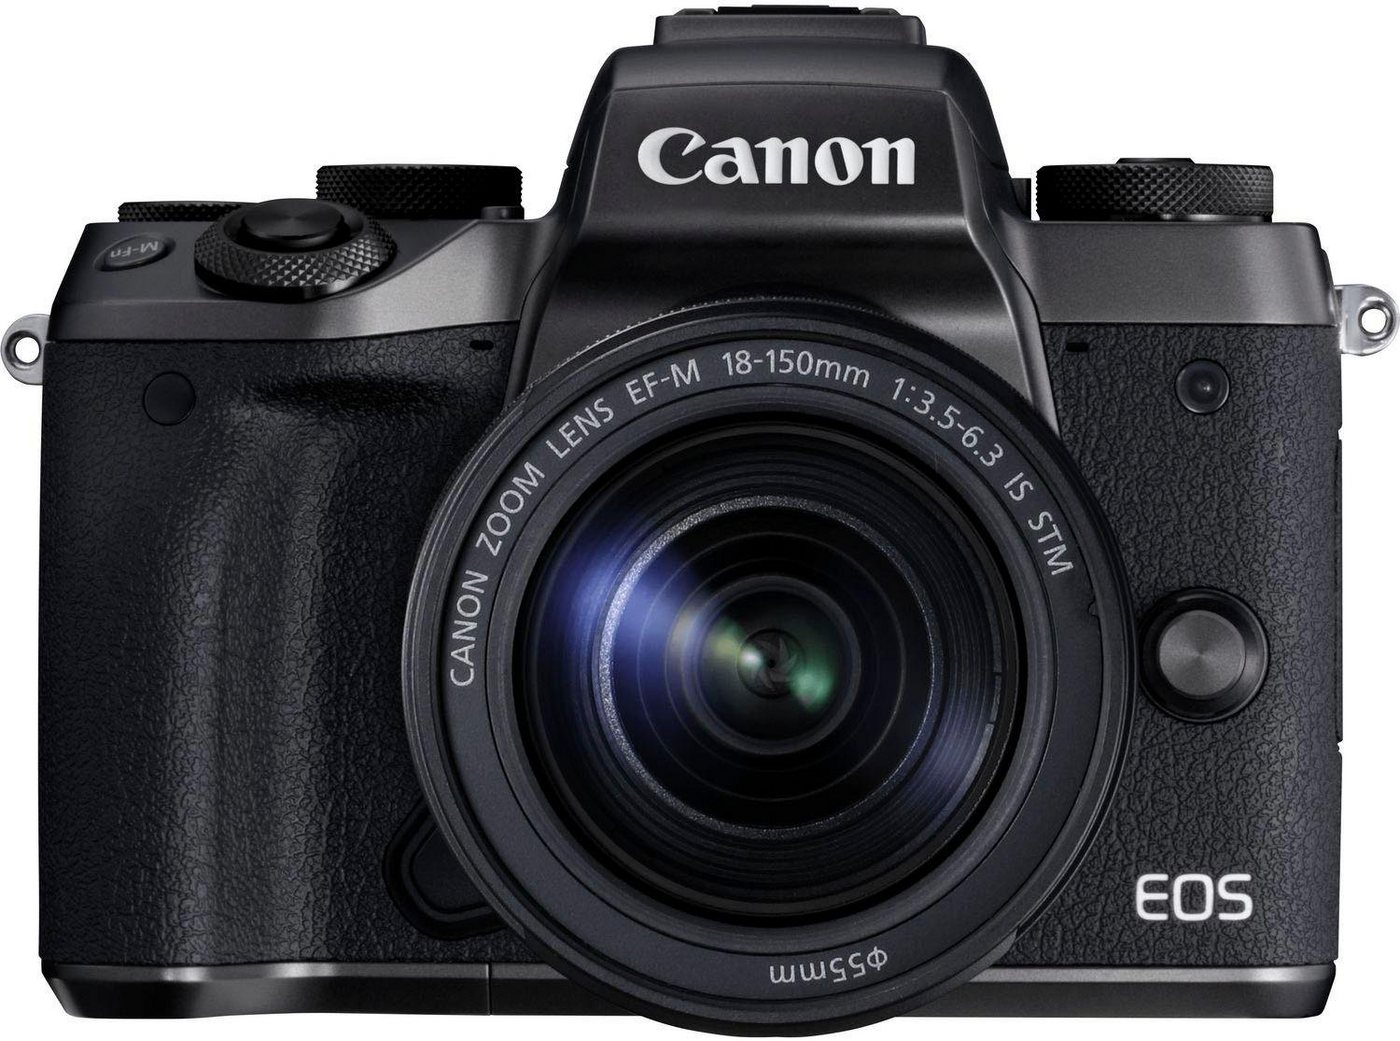 Systemkameras - Canon »EOS M5 EF M 18 150mm 1 3,5 6,3 IS STM« Systemkamera (EF M 18 150mm 1 3,5 6,3 IS STM, 24,2 MP, 8,3x opt. Zoom, NFC, WLAN (Wi Fi), Bluetooth)  - Onlineshop OTTO